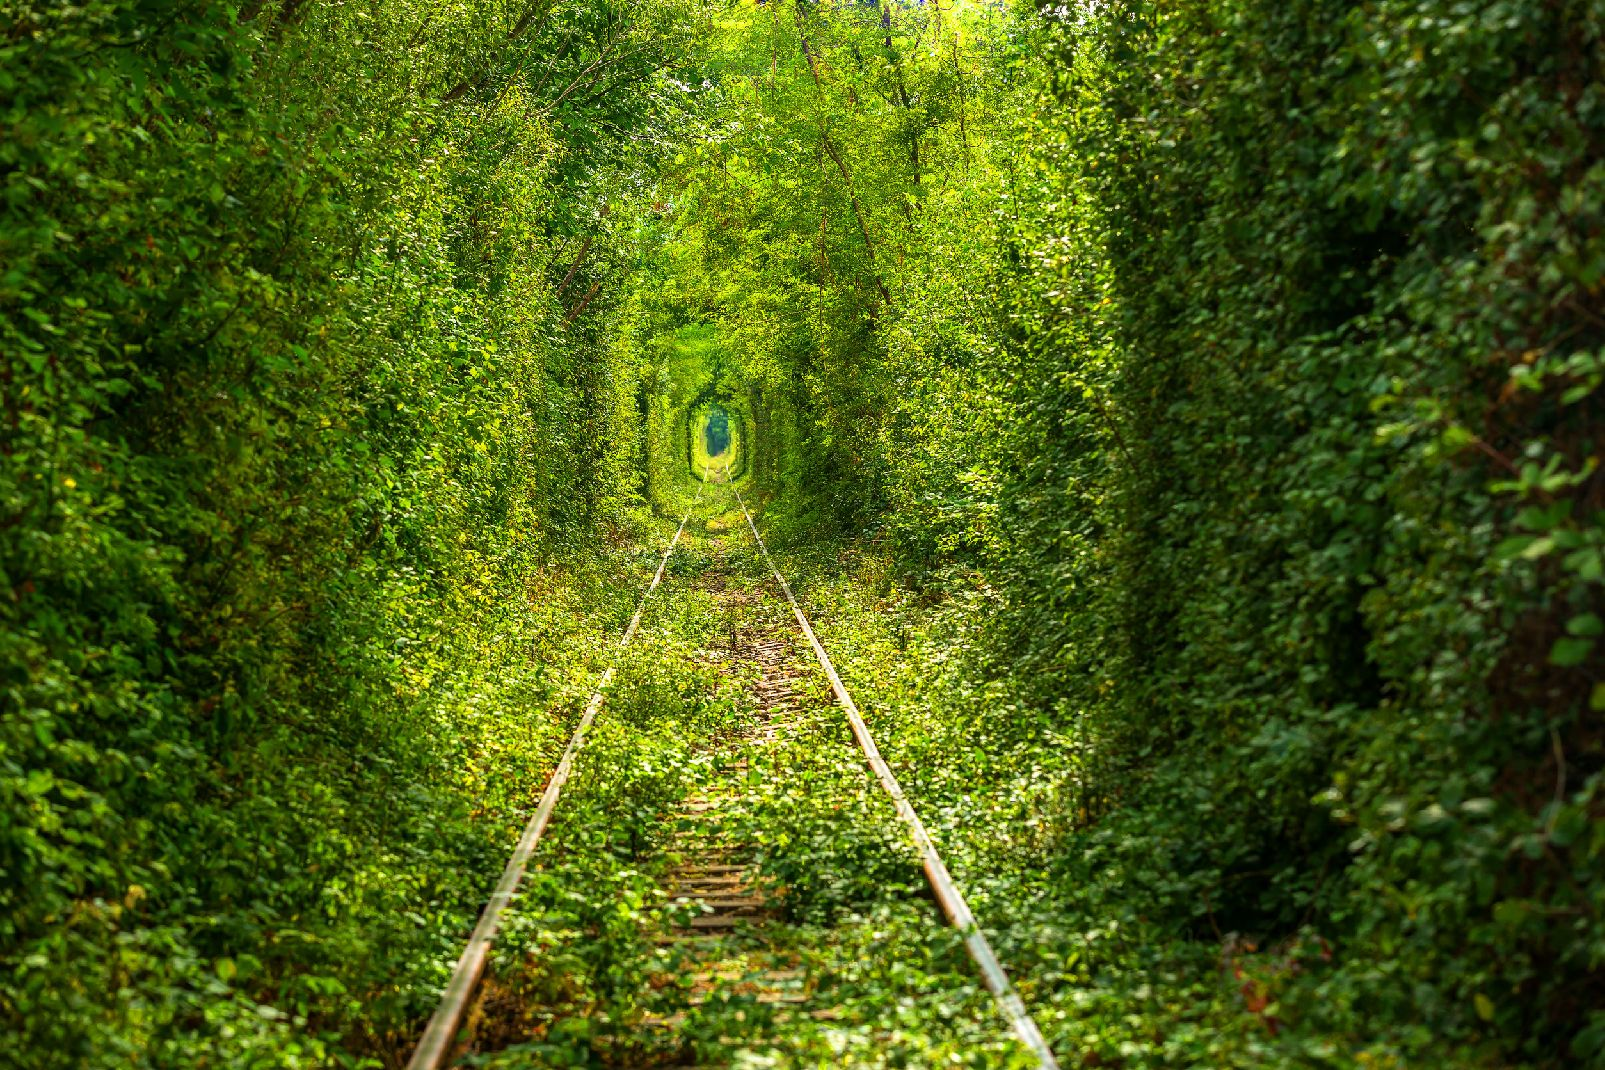 Le tunnel de l'amour en Ukraine | Arts in the City